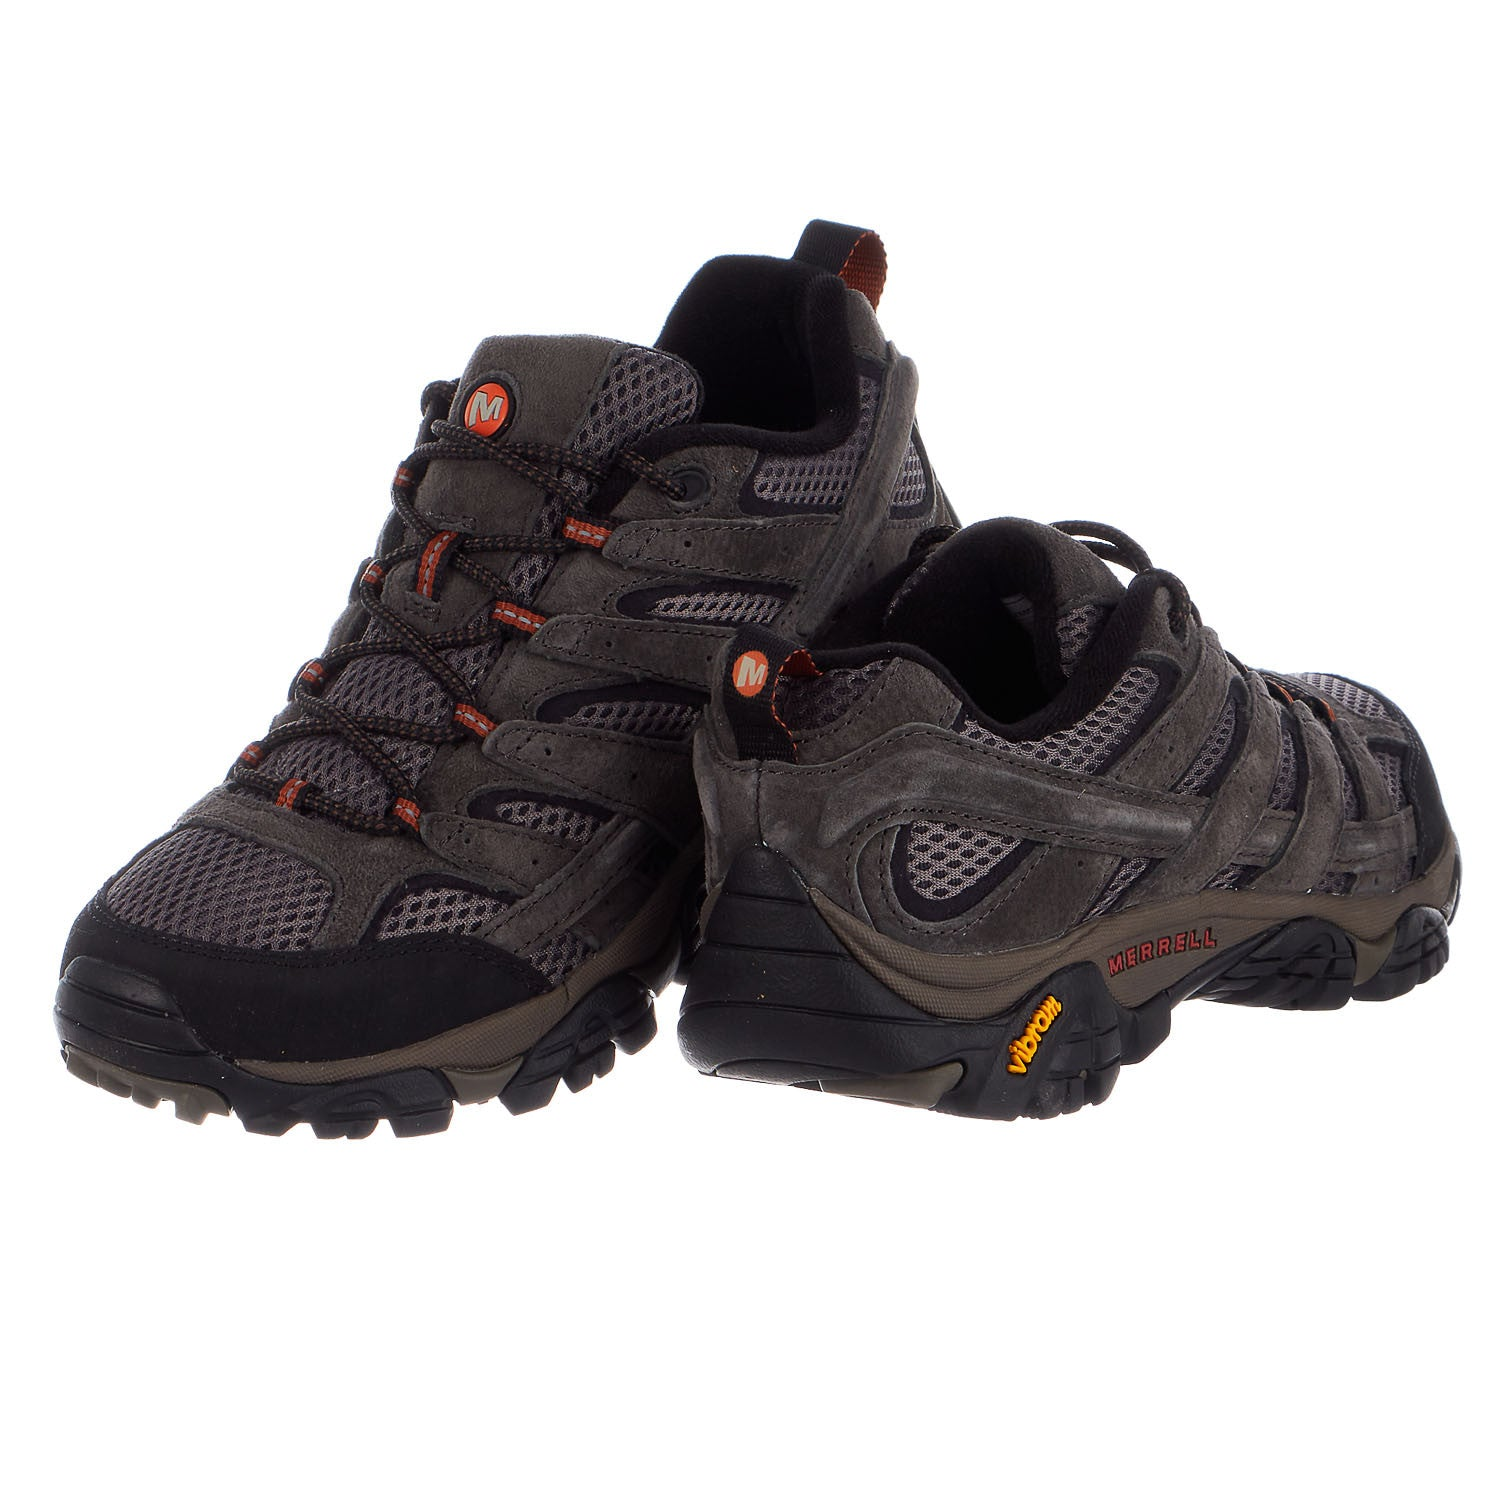 11159df92ef Merrell Moab 2 Ventilator Hiking Shoe - Men's - Shoplifestyle